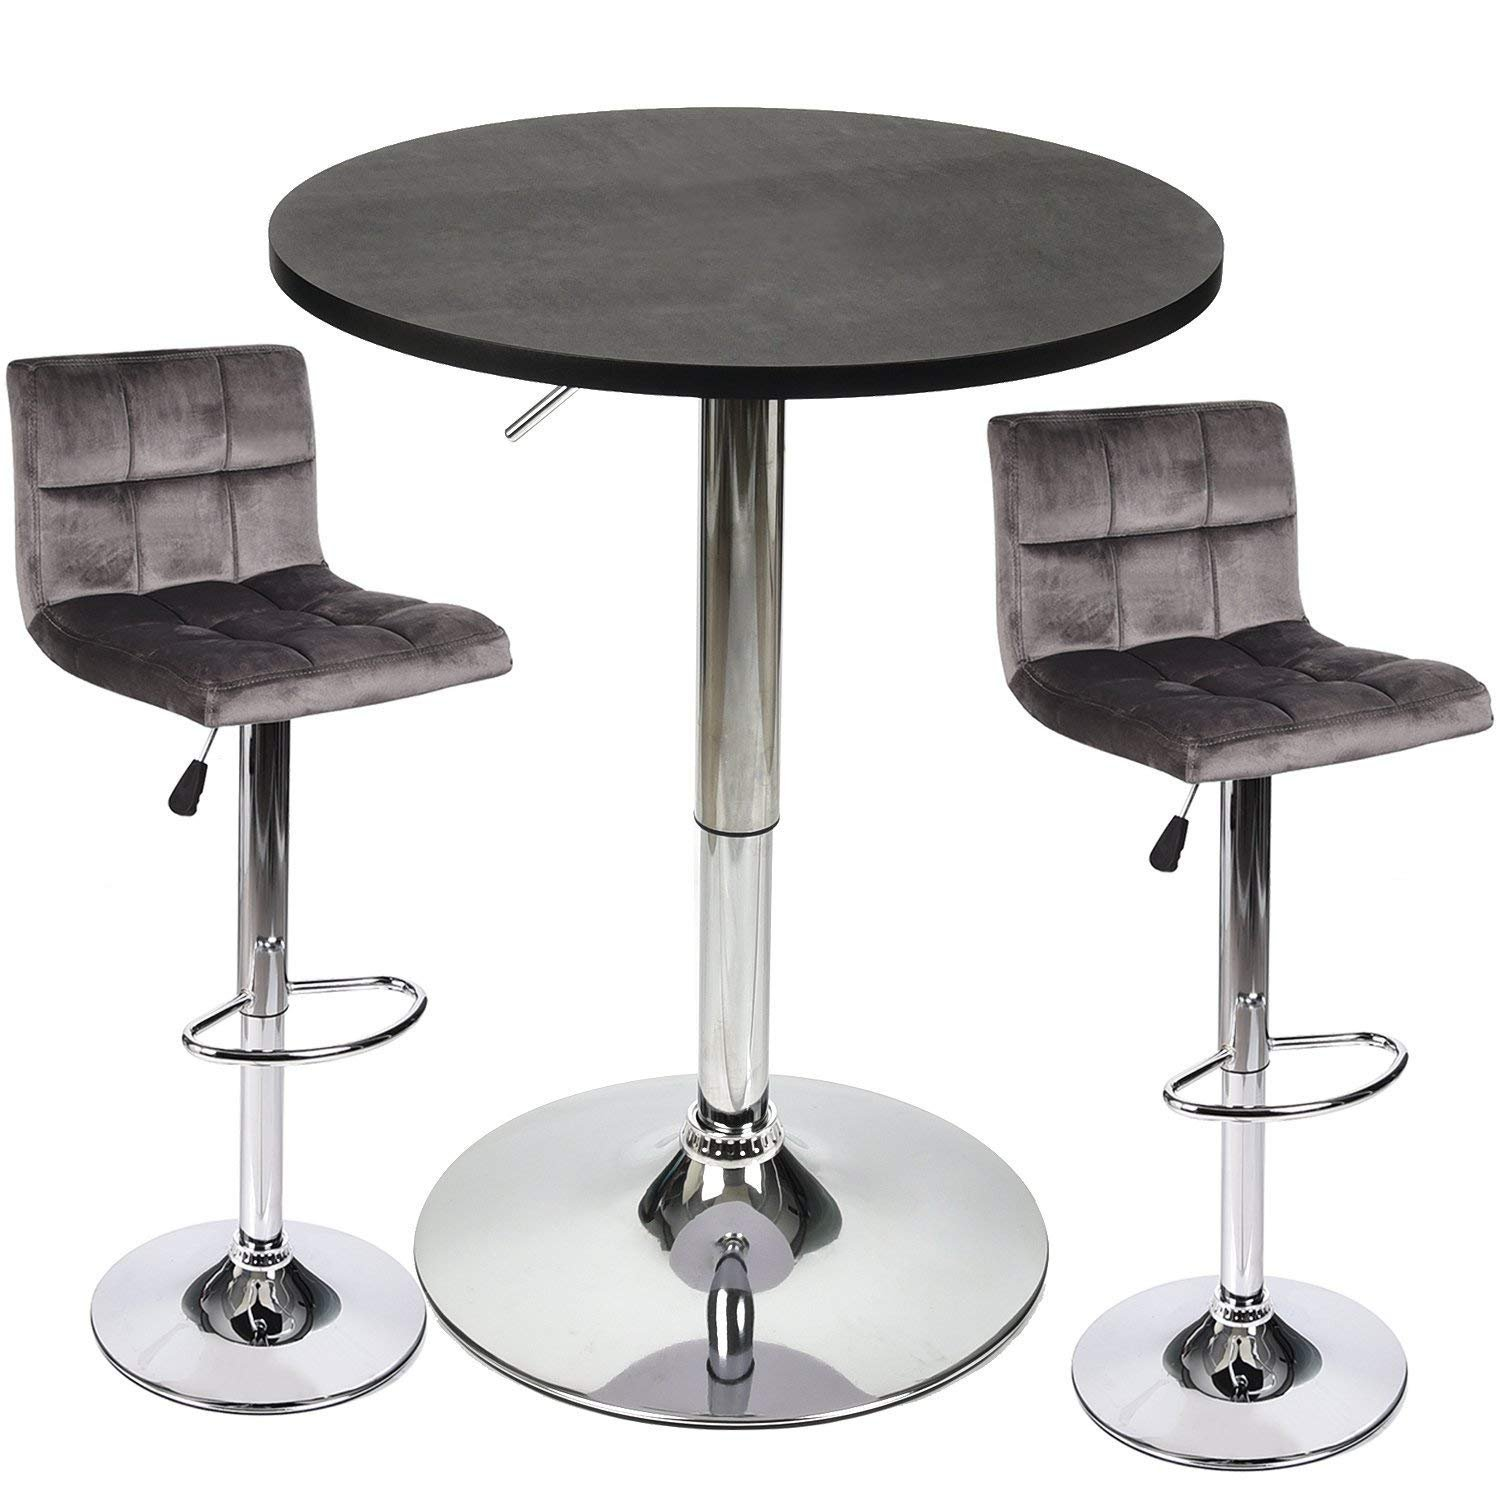 3 Piece Bar Table Stools Set - Height Adjustable Table with Swivel Bar Chairs Set - Bistro Pub Kitchen Dining Furniture (Set 5)